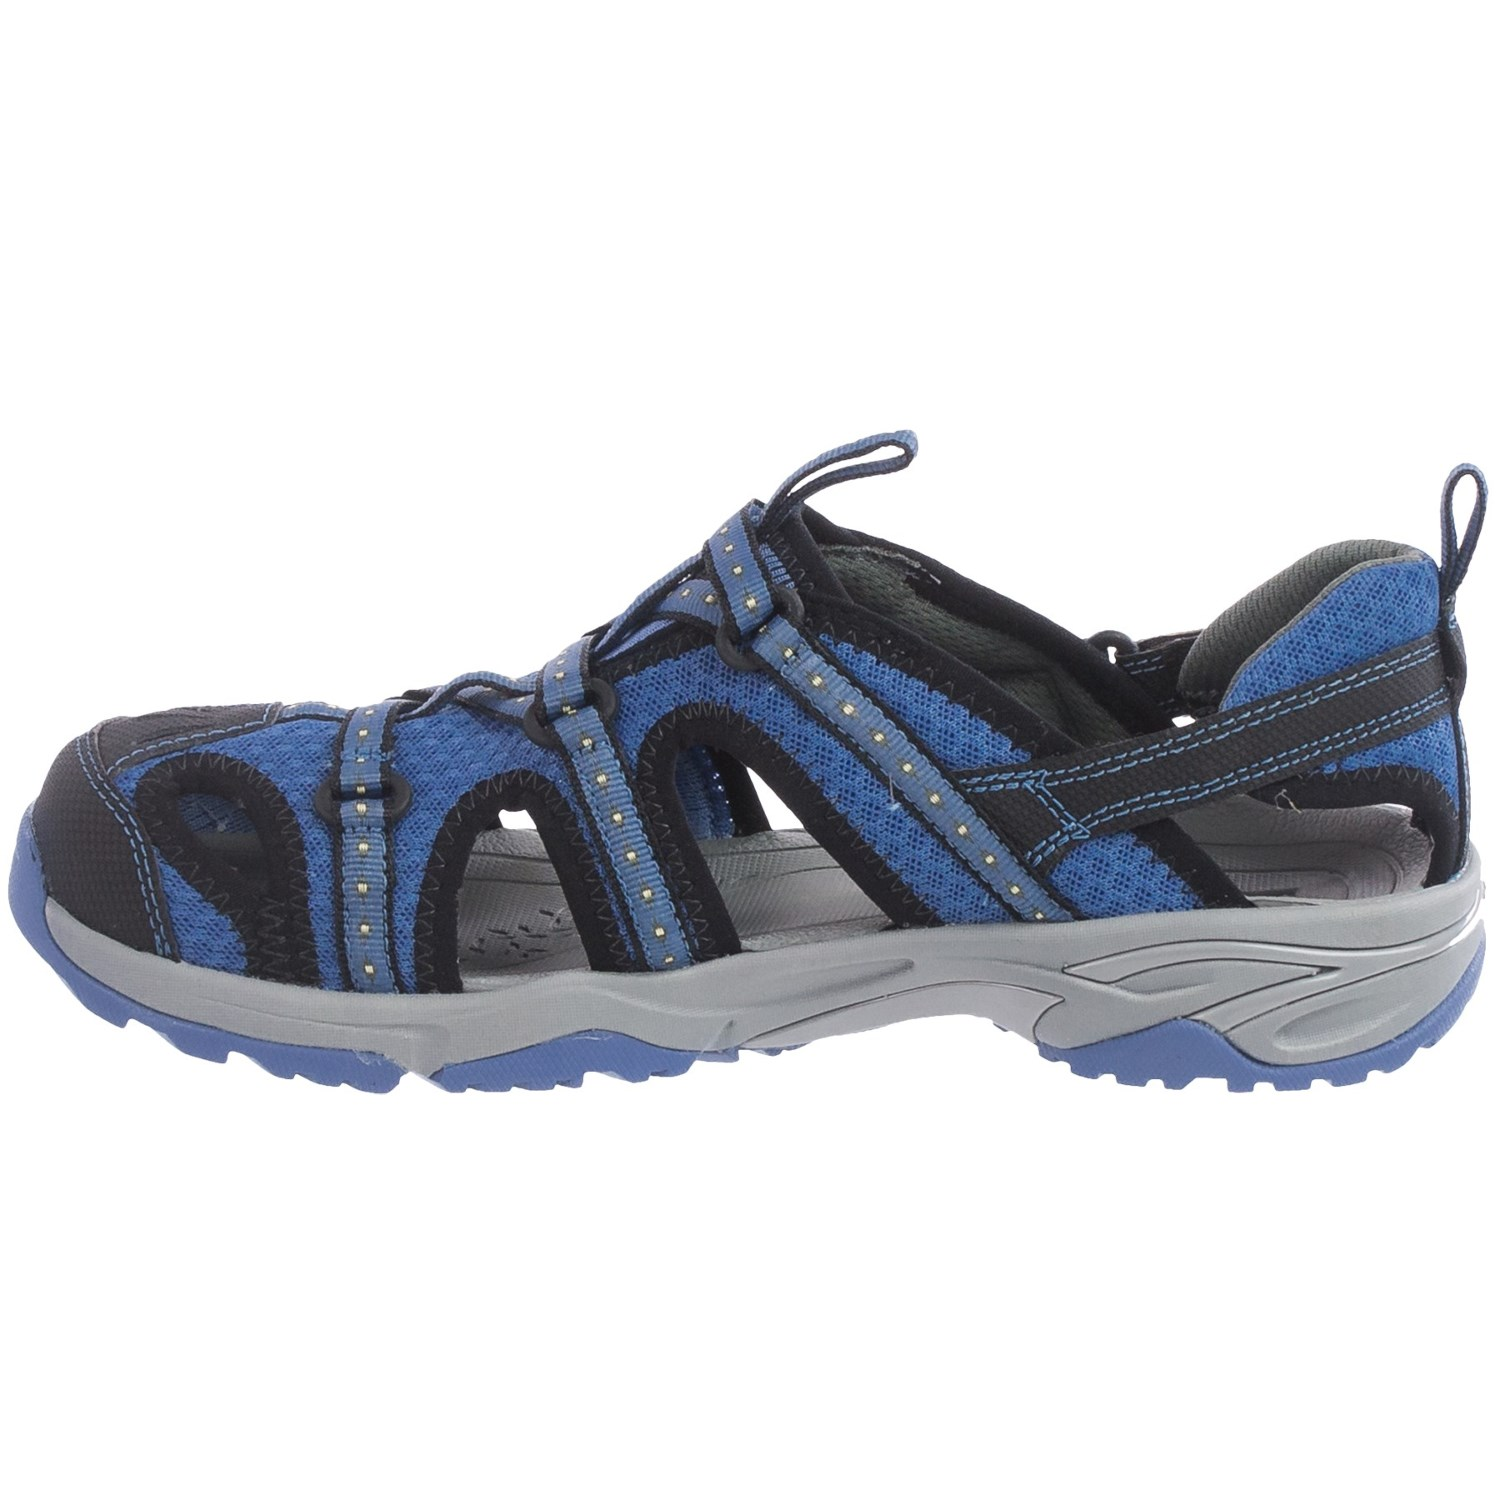 sport sandals for women items found. Sort By. items. View. Sort By. Filter. Like. ECCO Sport. Yucatan Sandal. $ 5 Rated 5 stars. Like. ECCO Sport Emerson Buckle Sport Sandal. $ Like. Salt Water Sandal by Hoy Shoes. Classic (Big Kid/Adult) $ MSRP: $ 4 Rated 4 stars. Like. Salt Water Sandal by Hoy Shoes.